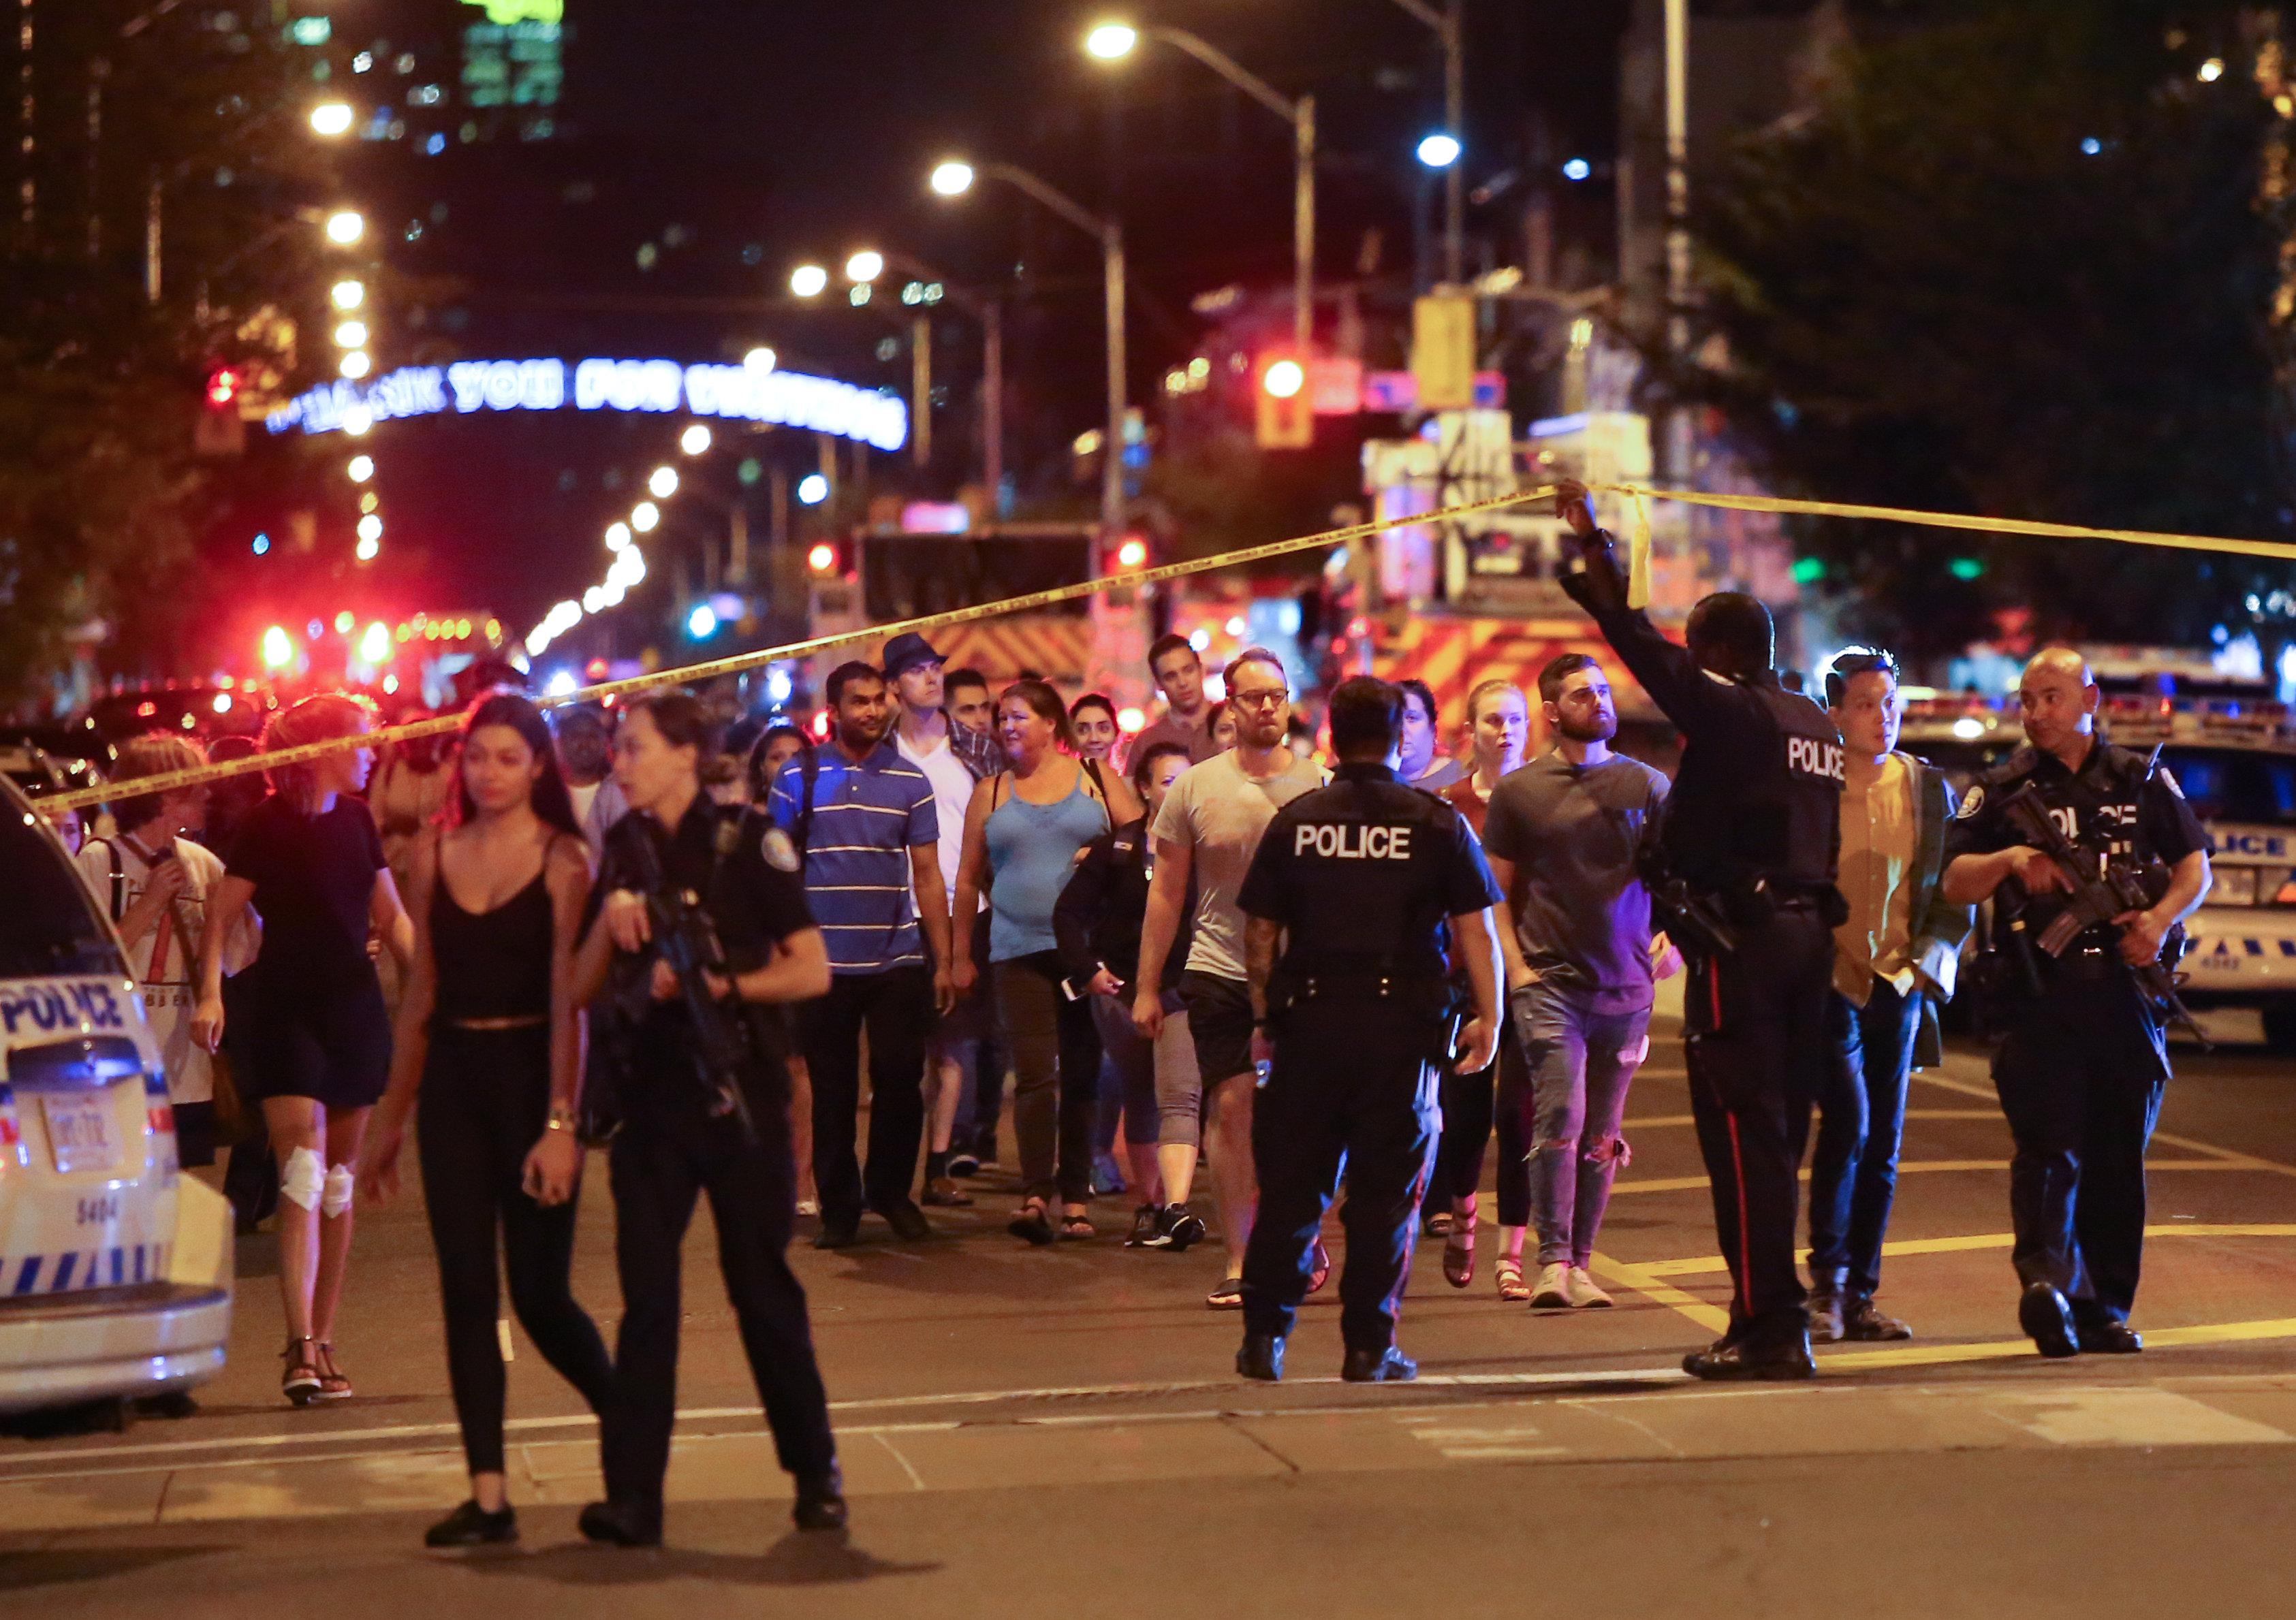 People leave an area taped off by the police near the scene of a mass shooting in Toronto, Canada, July 22, 2018. Chris Helgren